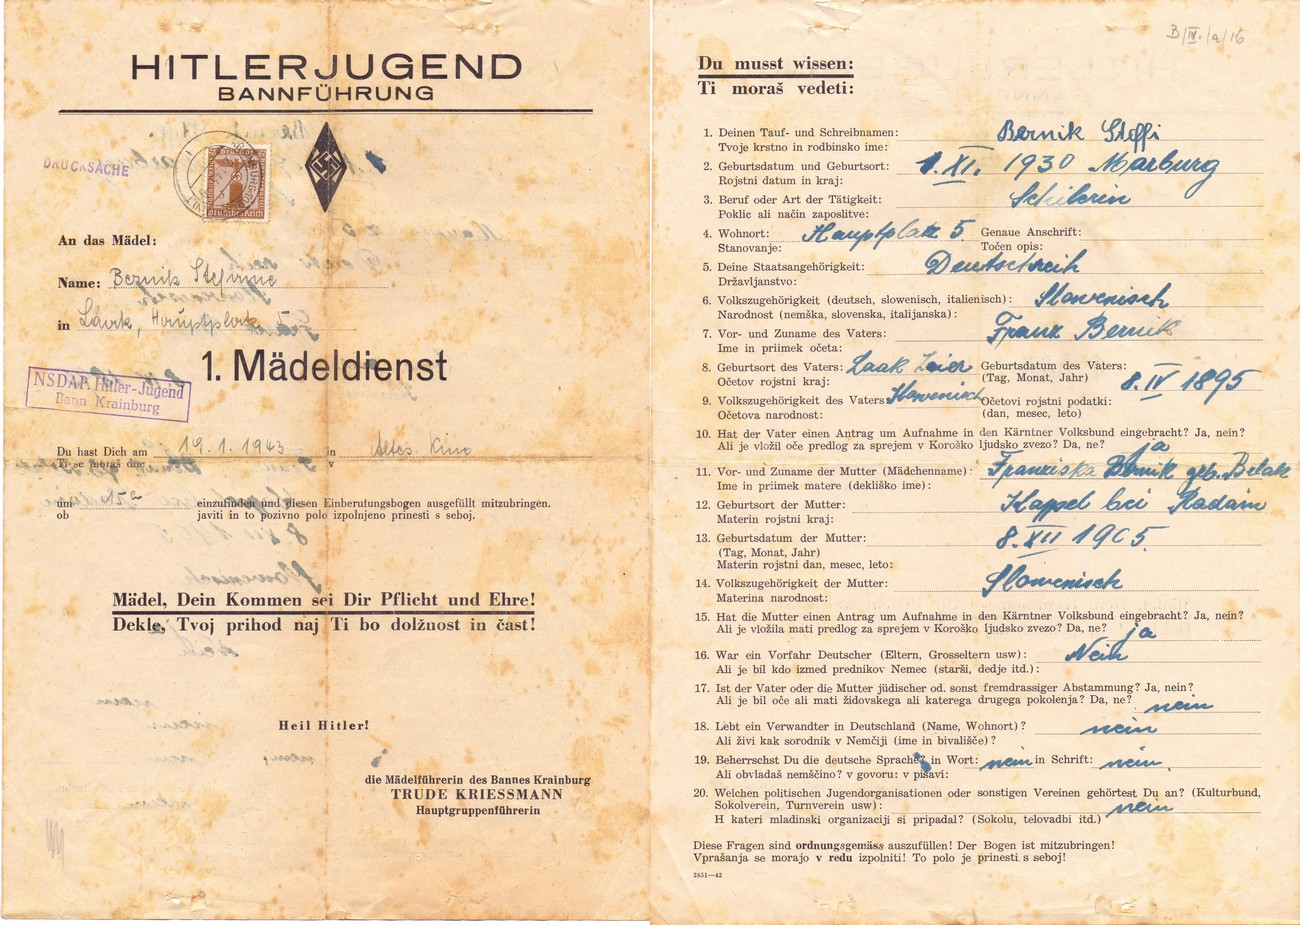 Hitlerjugend or Hitler Youth – German Nazi youth organisation – was founded in 1926. One of its goals was to spread Nazi ideology among young people. The organisation also operated in Žiri. Photographs show the application form that one needed to fill out if they wanted to join the Hitler Youth. SI ZAL ŠKL, 0268, 44, B-IV-a-16.